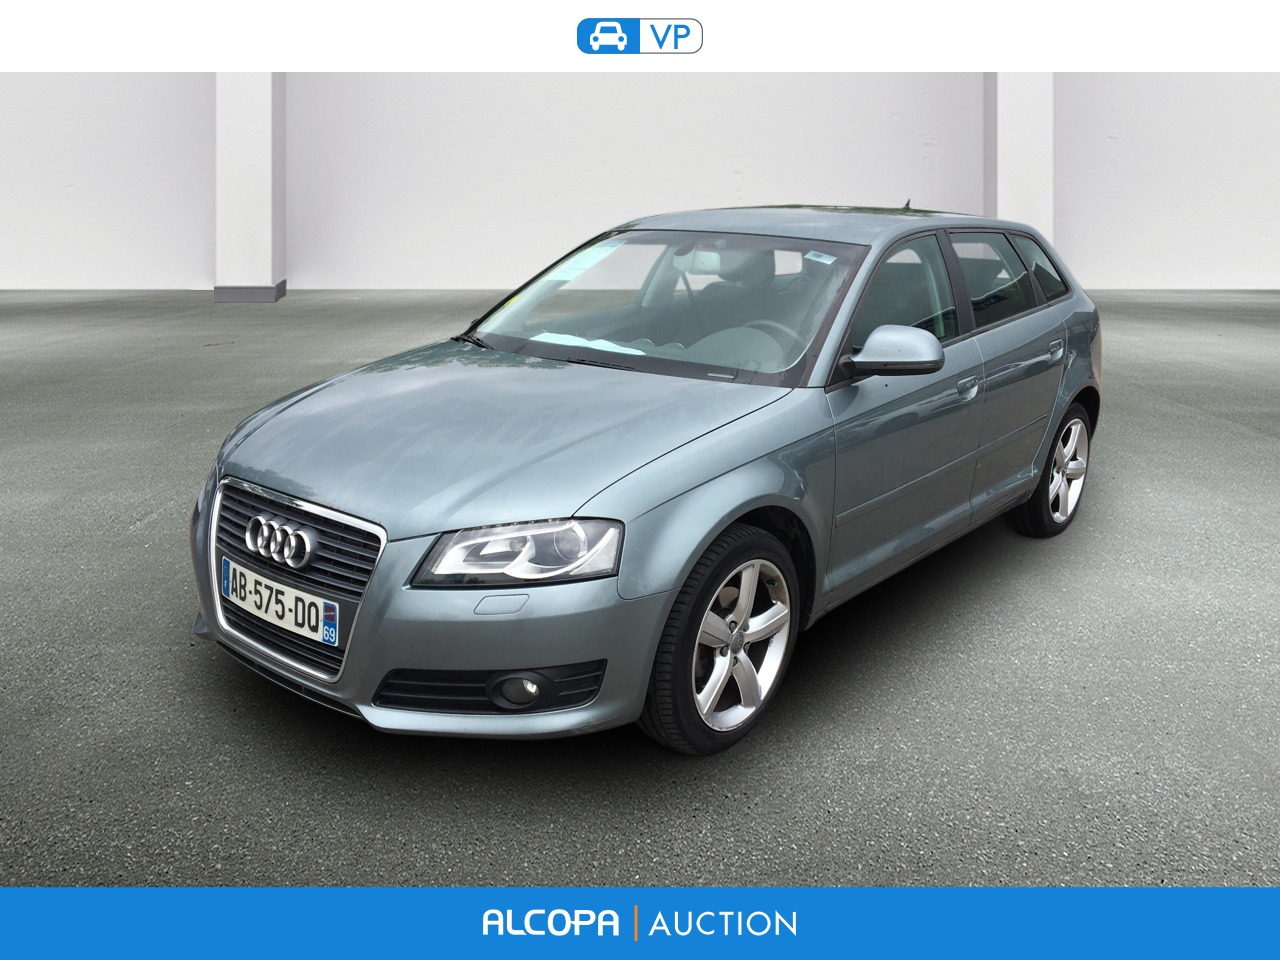 audi a3 sportback a3 sportback 2 0 tdi 140 dpf ambition luxe alcopa auction. Black Bedroom Furniture Sets. Home Design Ideas